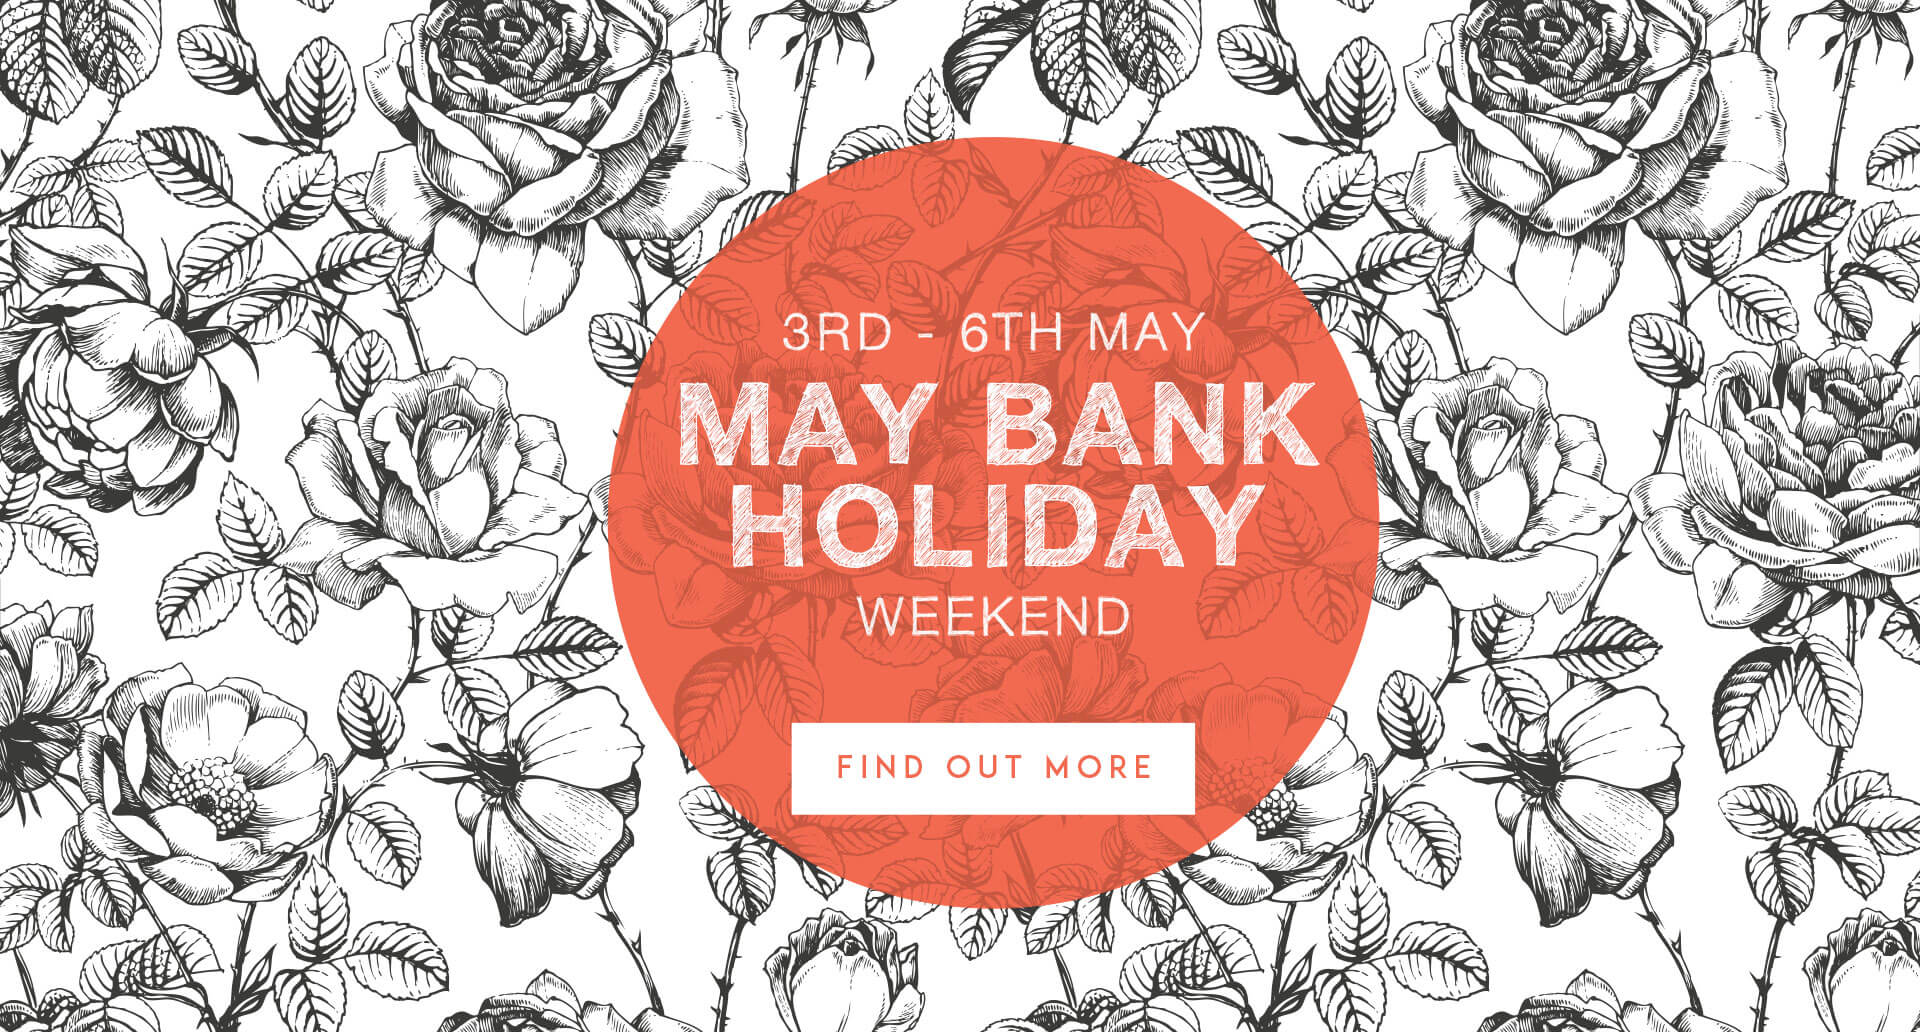 May Bank Holiday at The Mitre